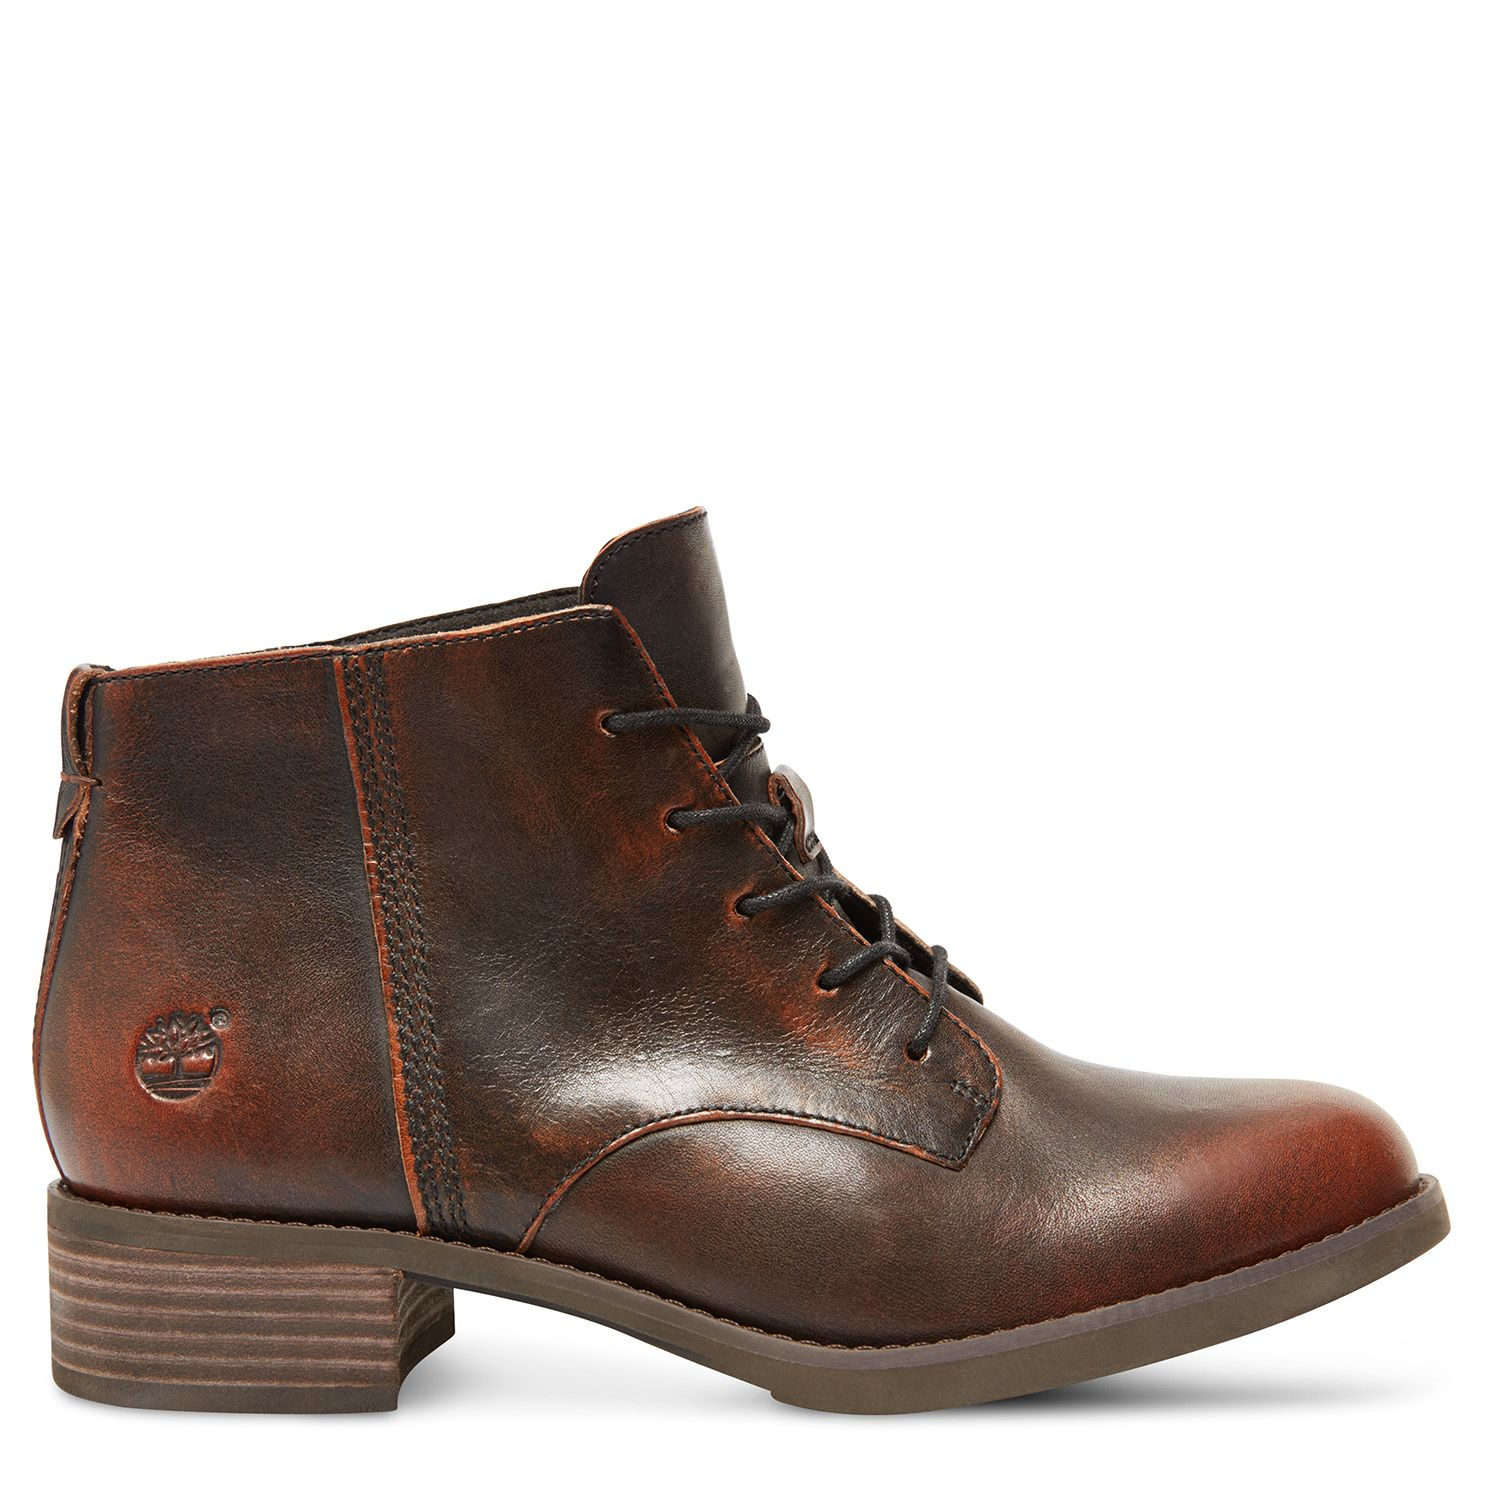 Timberland Women's Beckwith Lace Chukka | Clothes..Ahhhh